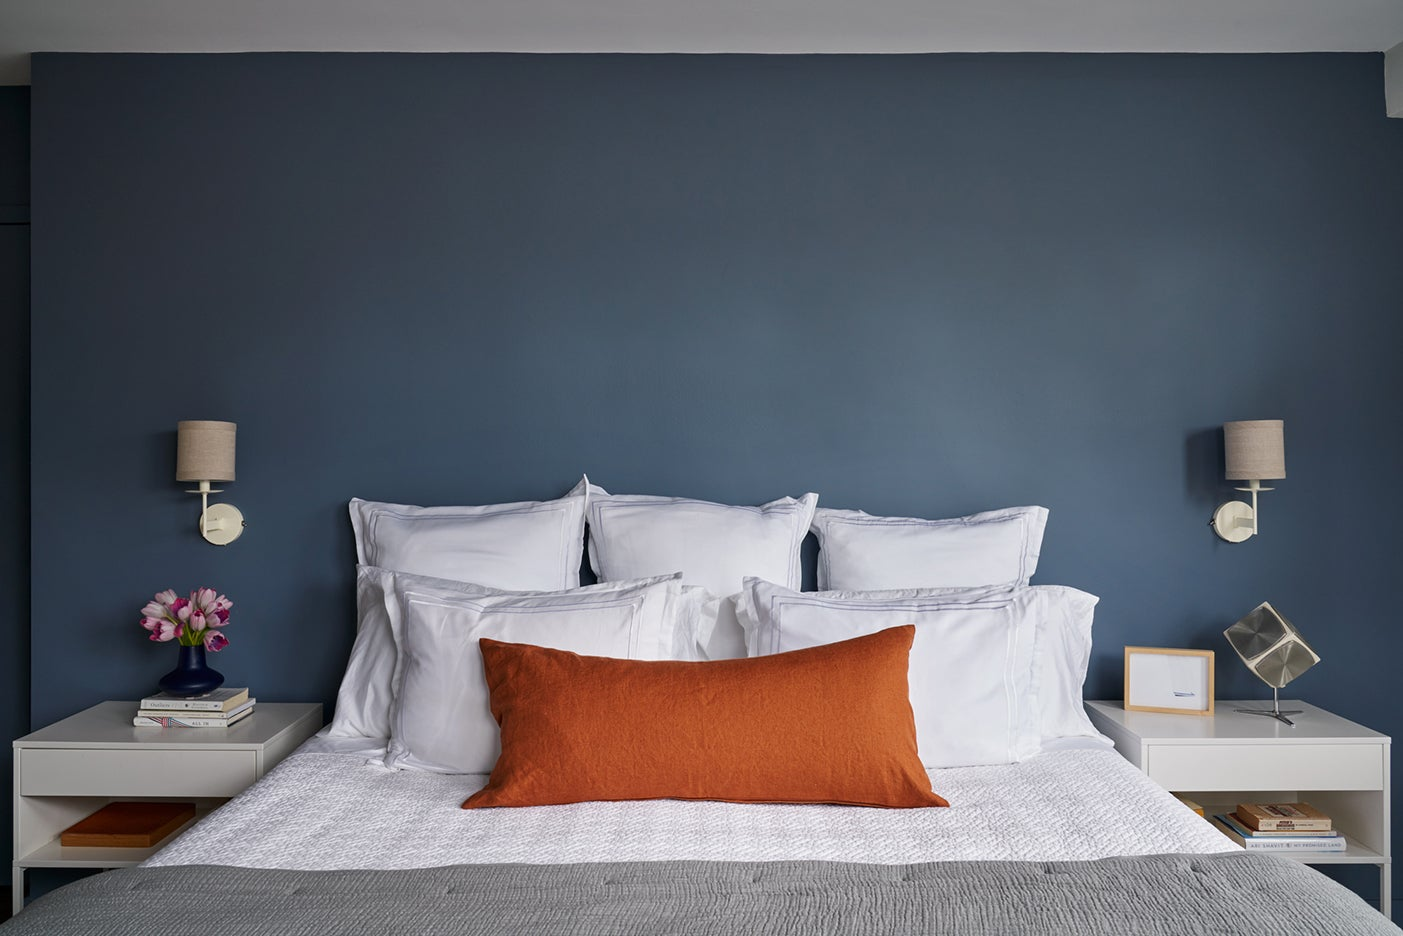 Blue bedroom with white linens